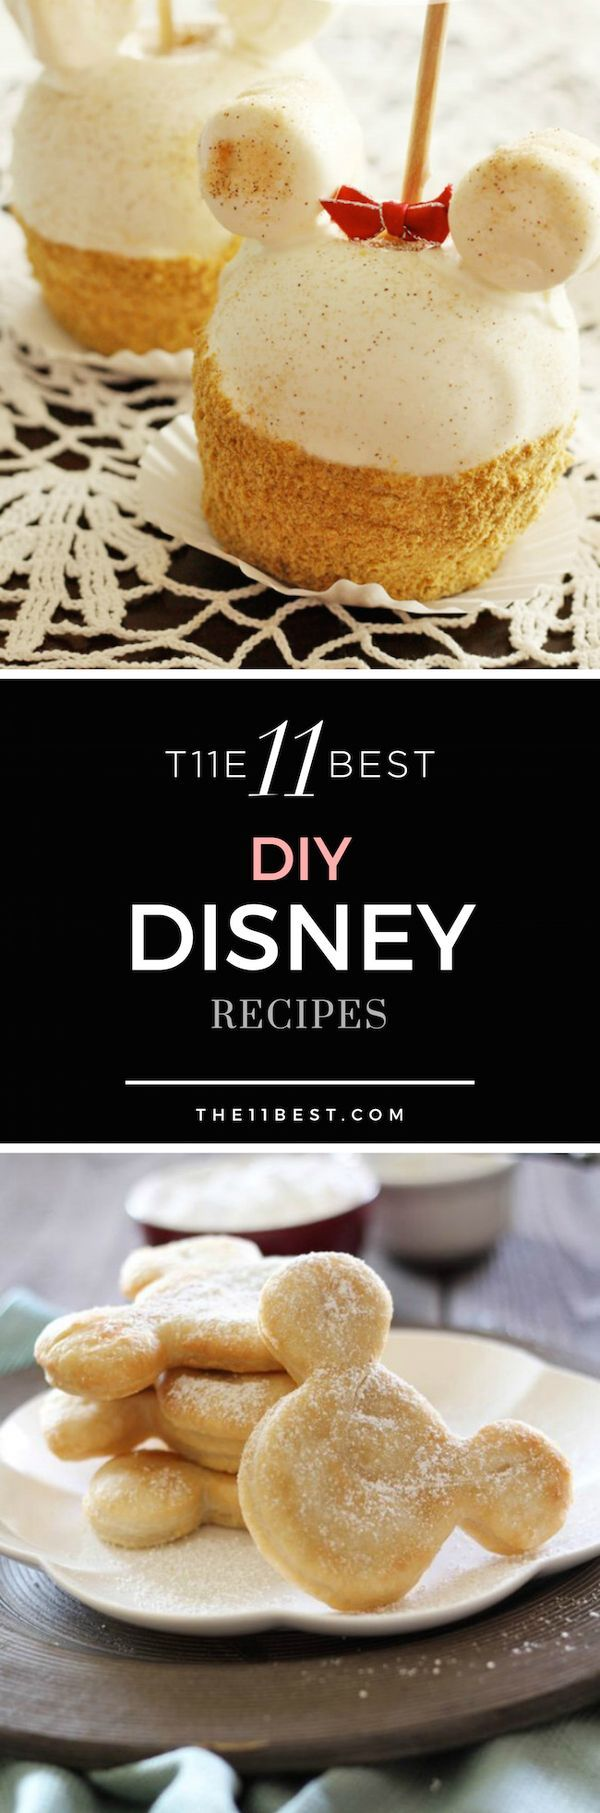 DIY Disney Recipe Ideas